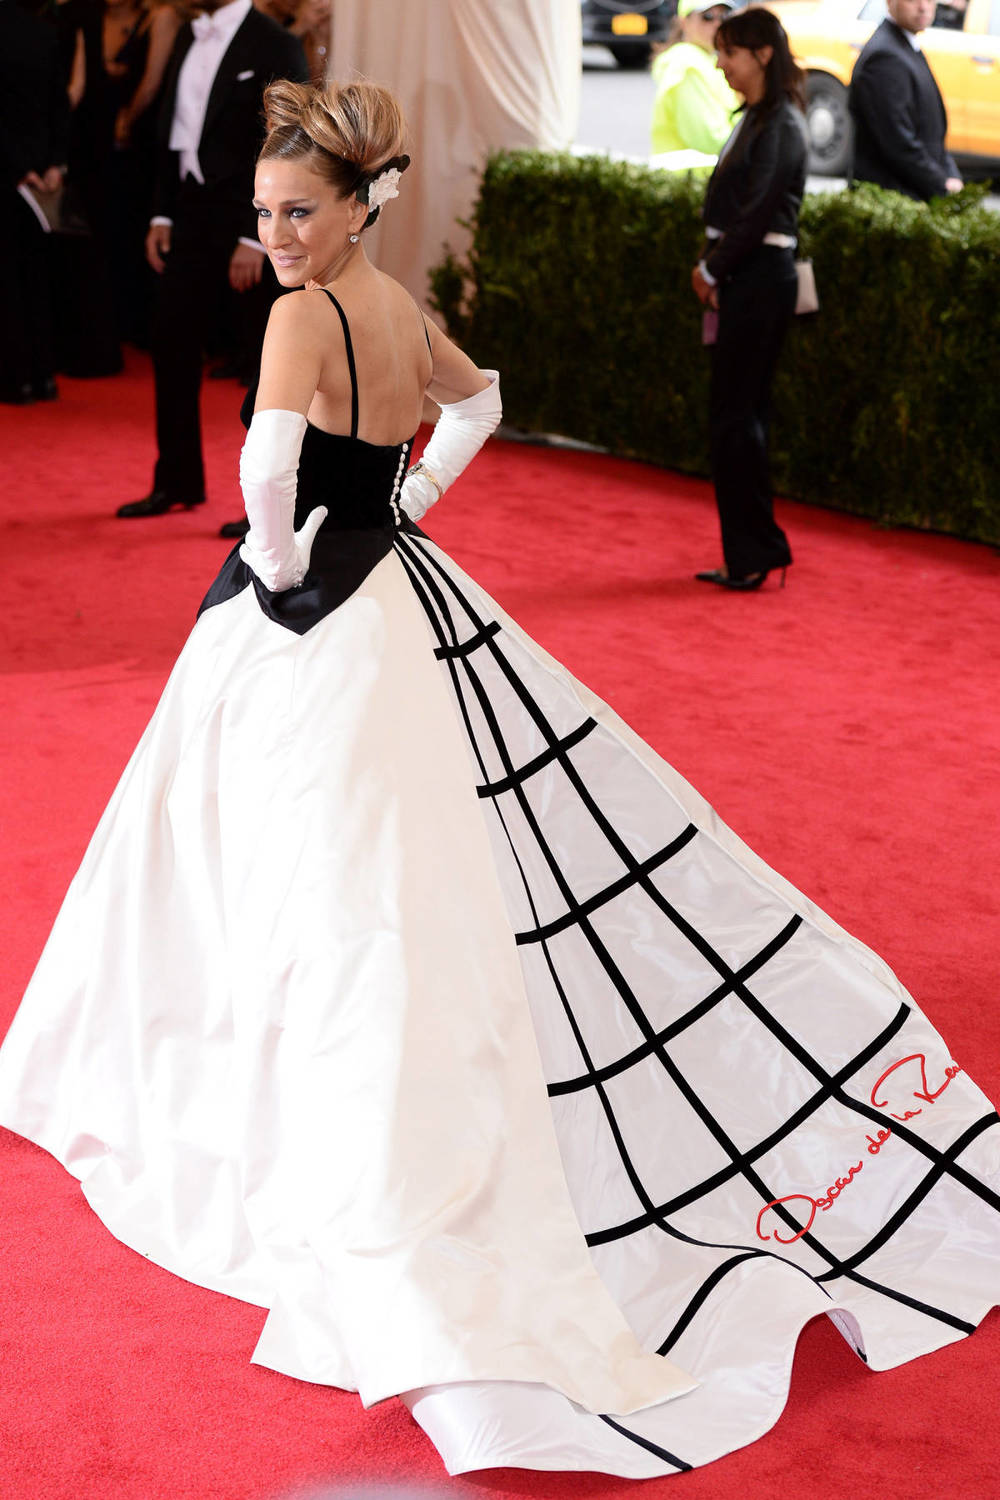 Image via Harpers Bazaar, Sarah Jessica Parker at the MET Gala